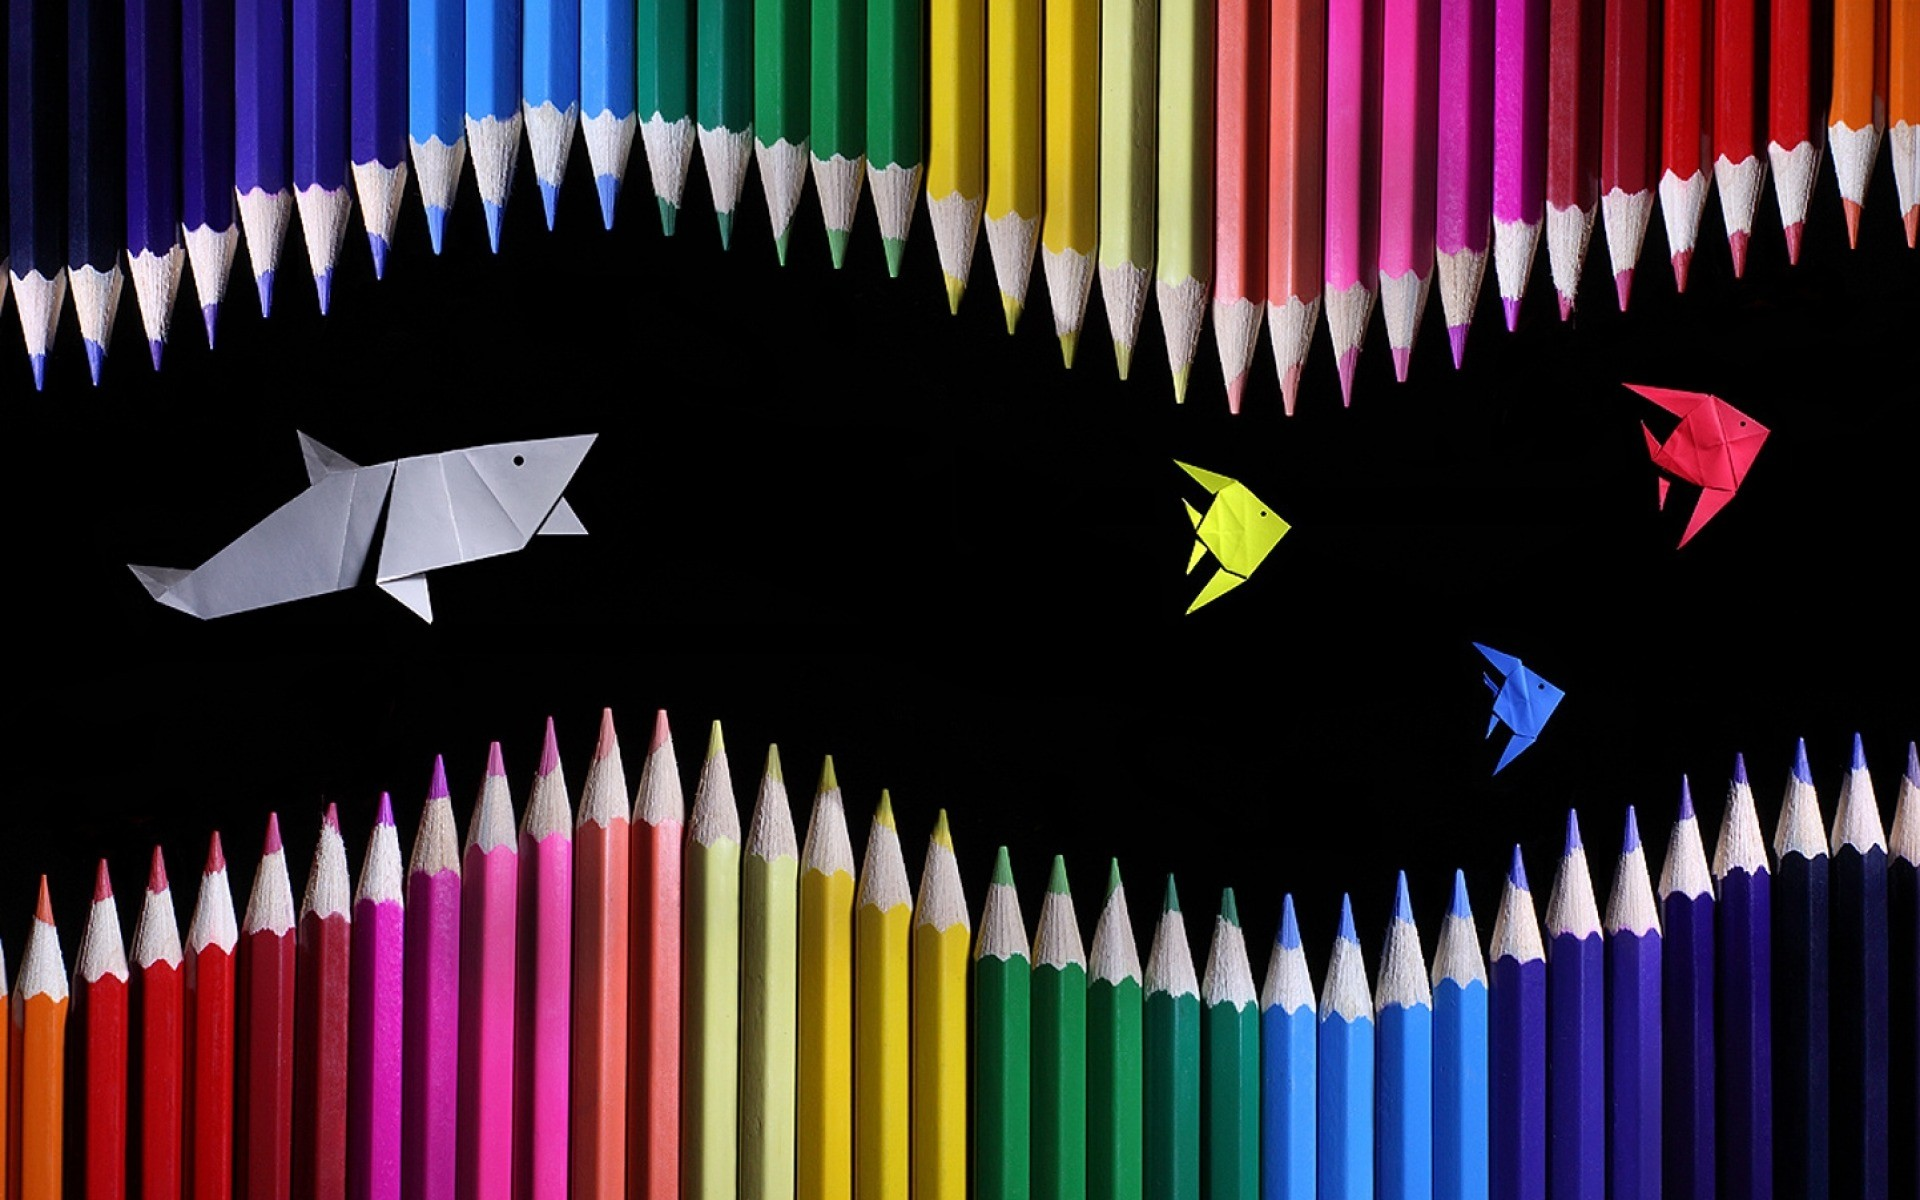 1920x1200 Colored Pencils Shark & Fishes wallpapers and stock photos